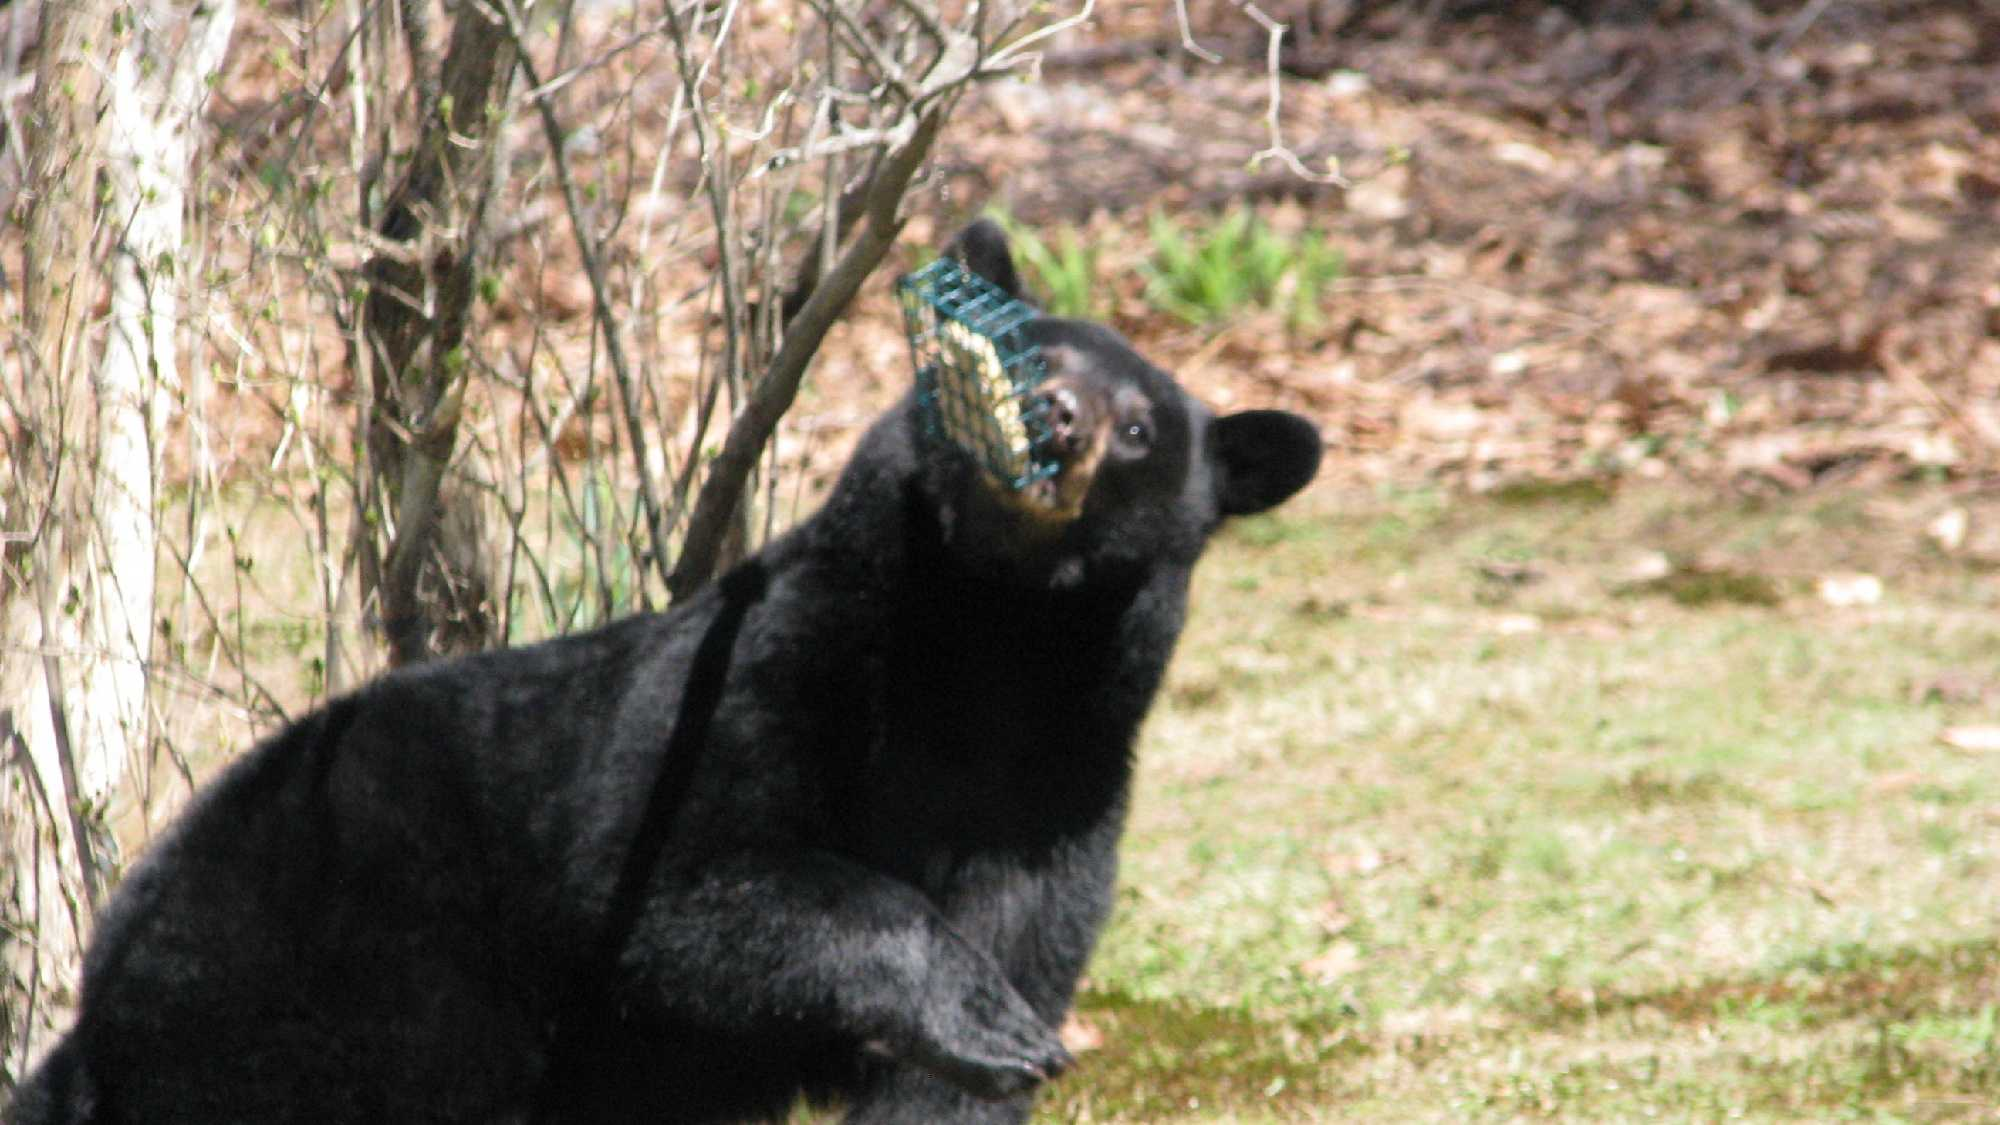 Bears are often attracted by bird feeders.